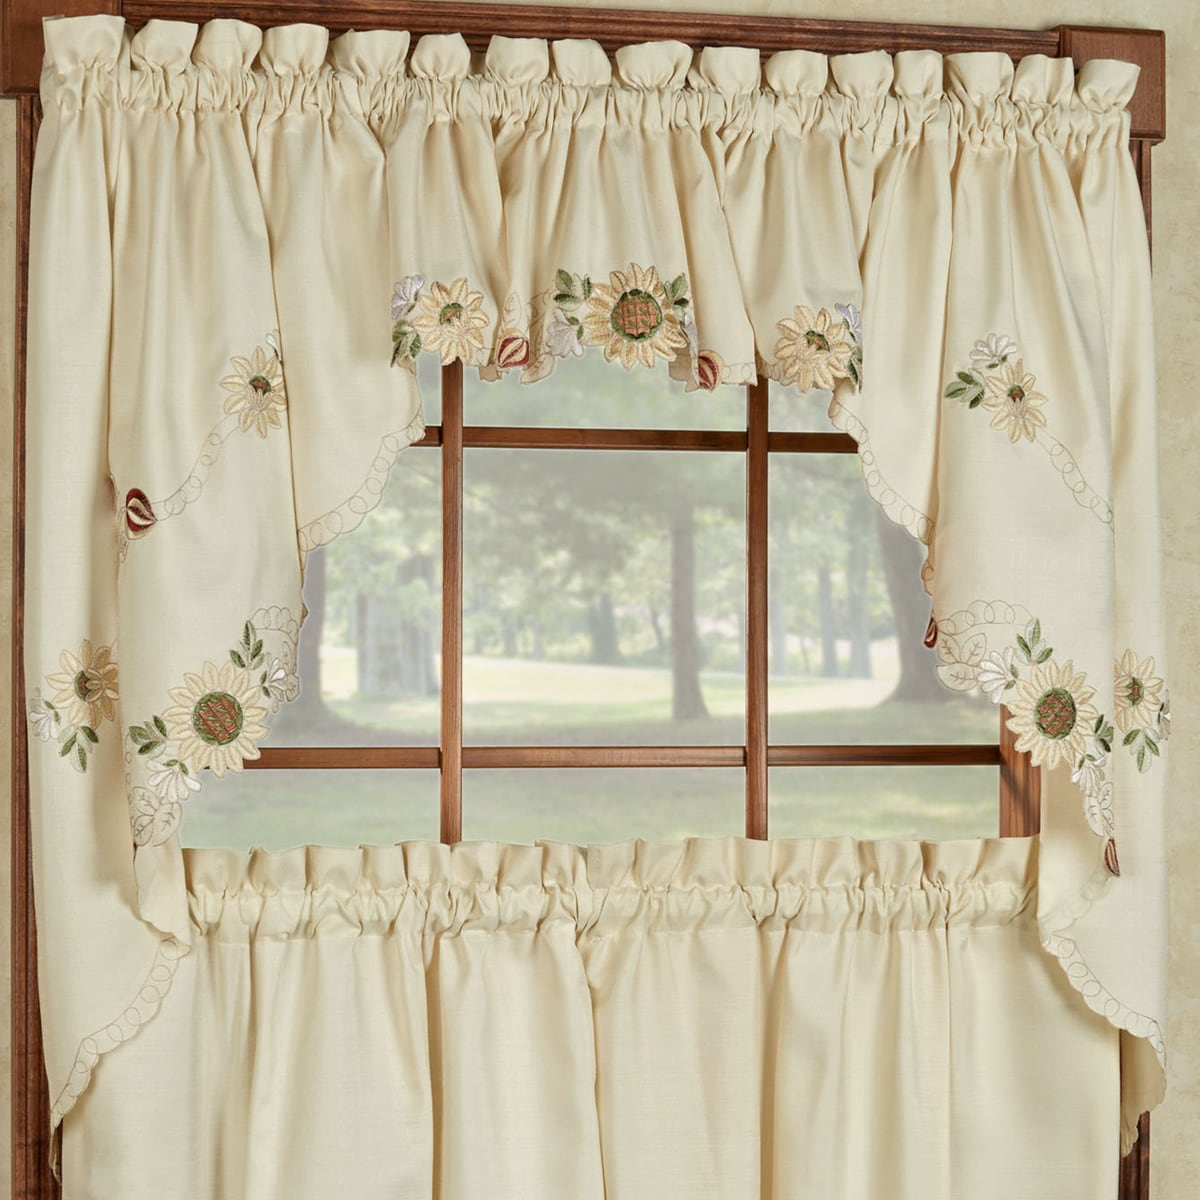 Embroidered Sunflower Kitchen Curtains Separates  Tier, Swag And Valance  Options   Free Shipping On Orders Over $45   Overstock.com   17323401